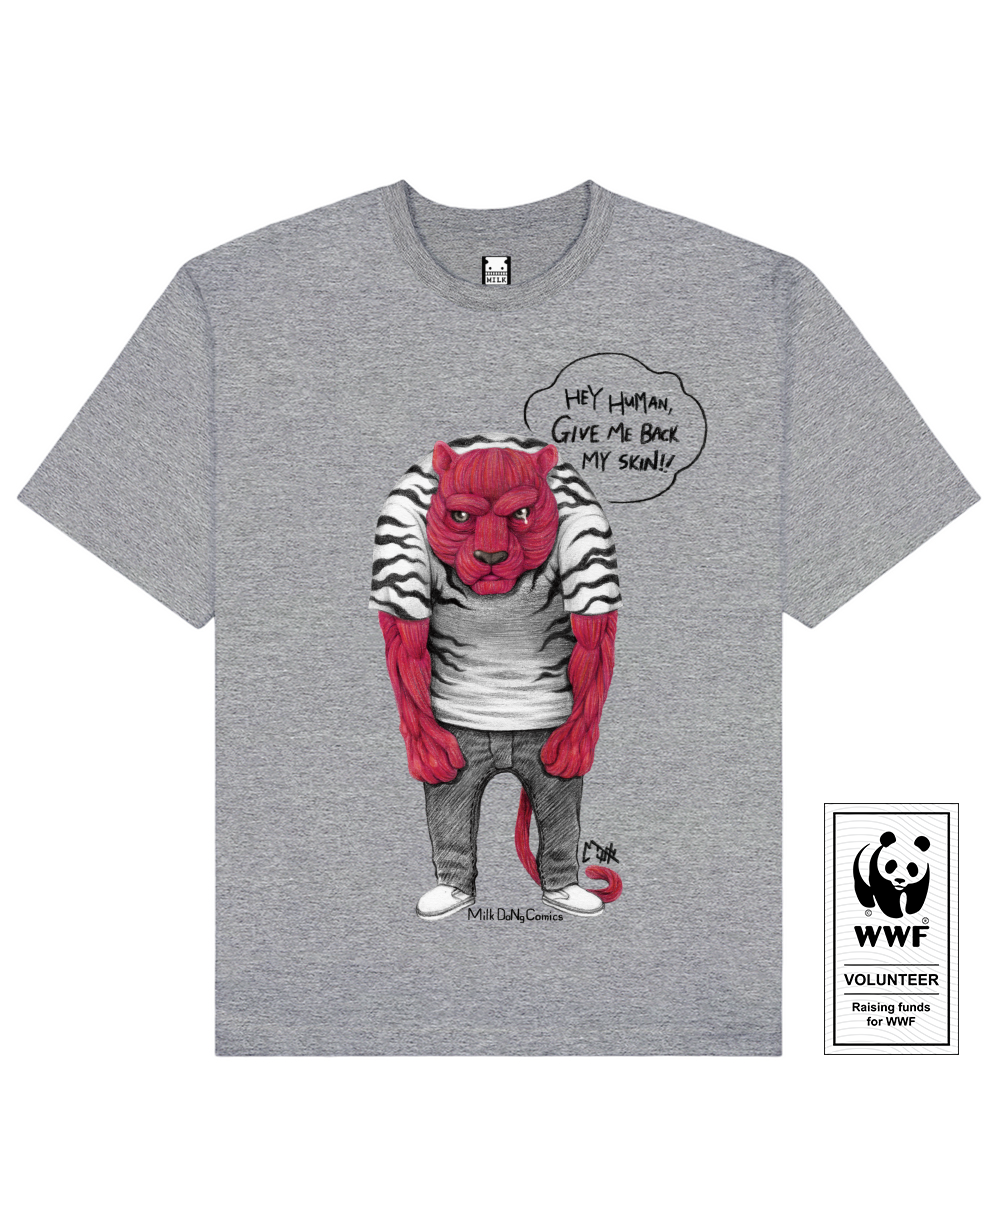 SKINLESS TIGER Printed T-Shirt in Gray - T-Shirts - Milk DoNg Comics - BRANMA